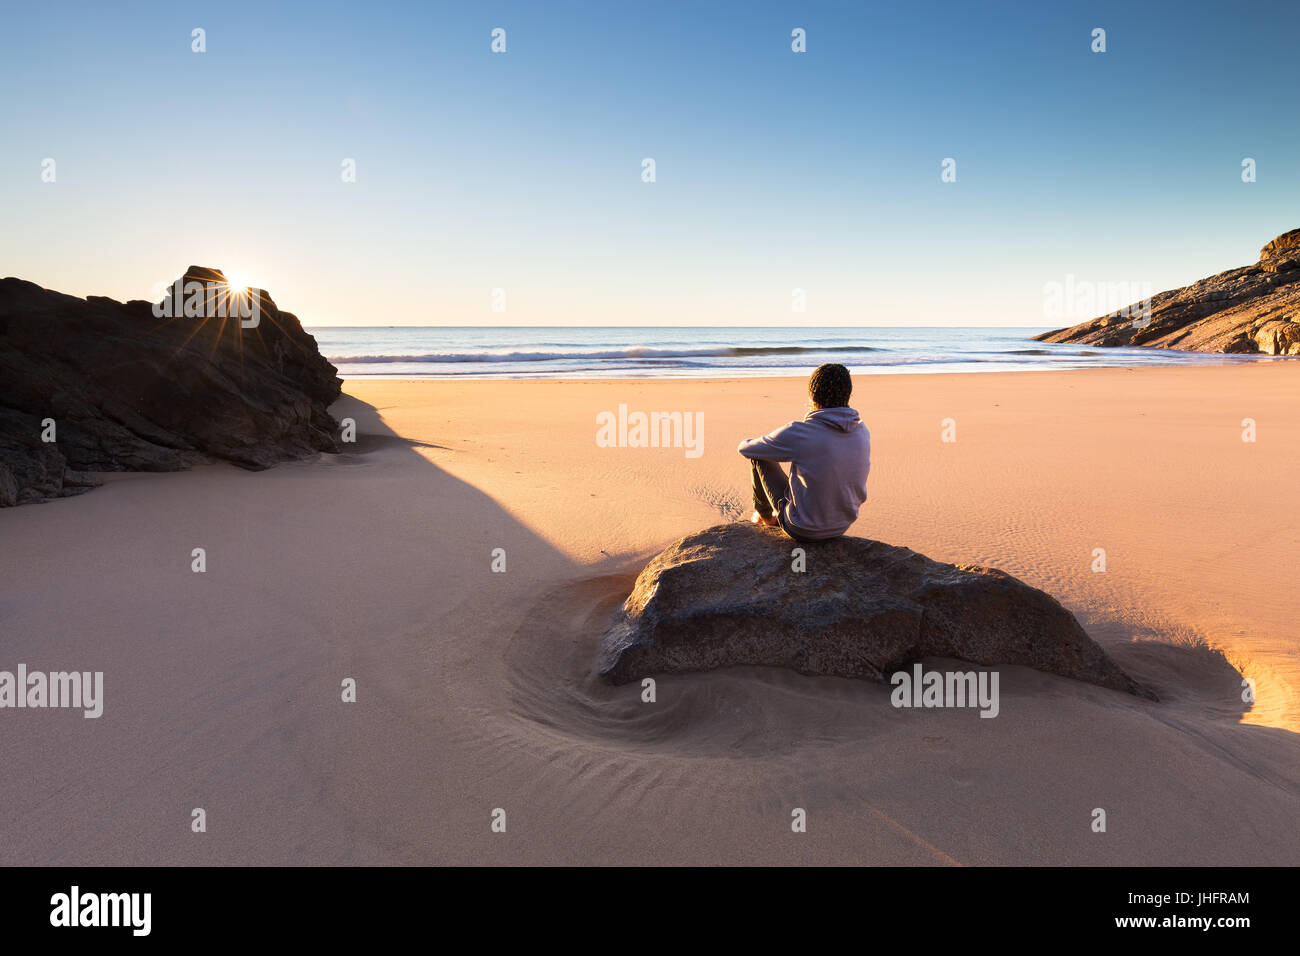 A person sits on a beautiful remote beach in Australia and watches a crisp sunrise over the ocean. - Stock Image